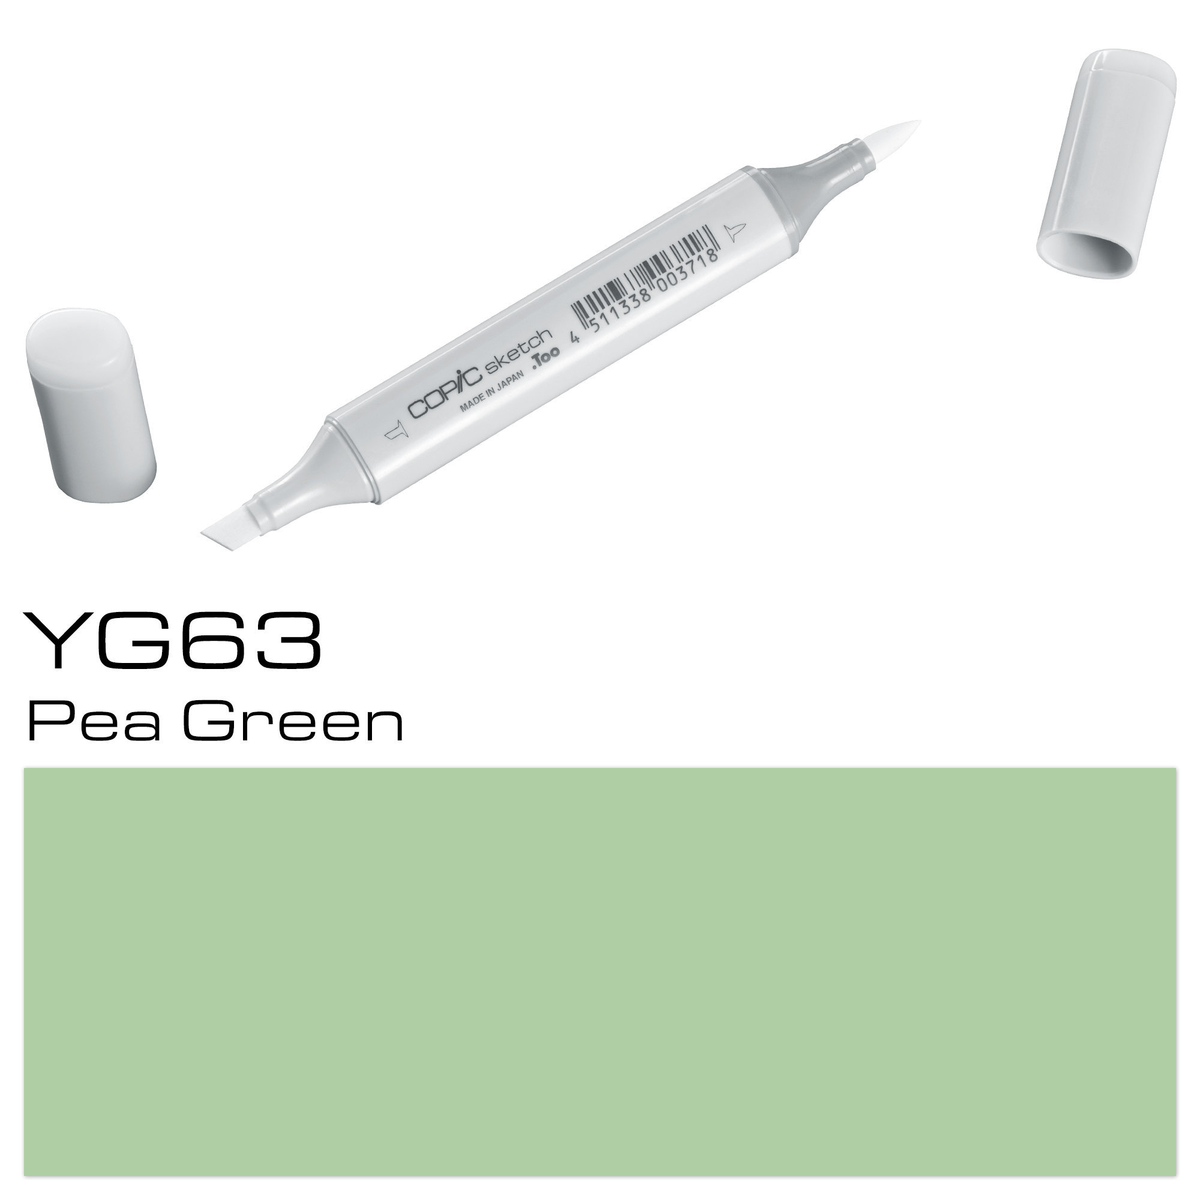 Copic Sketch YG 63 pea green